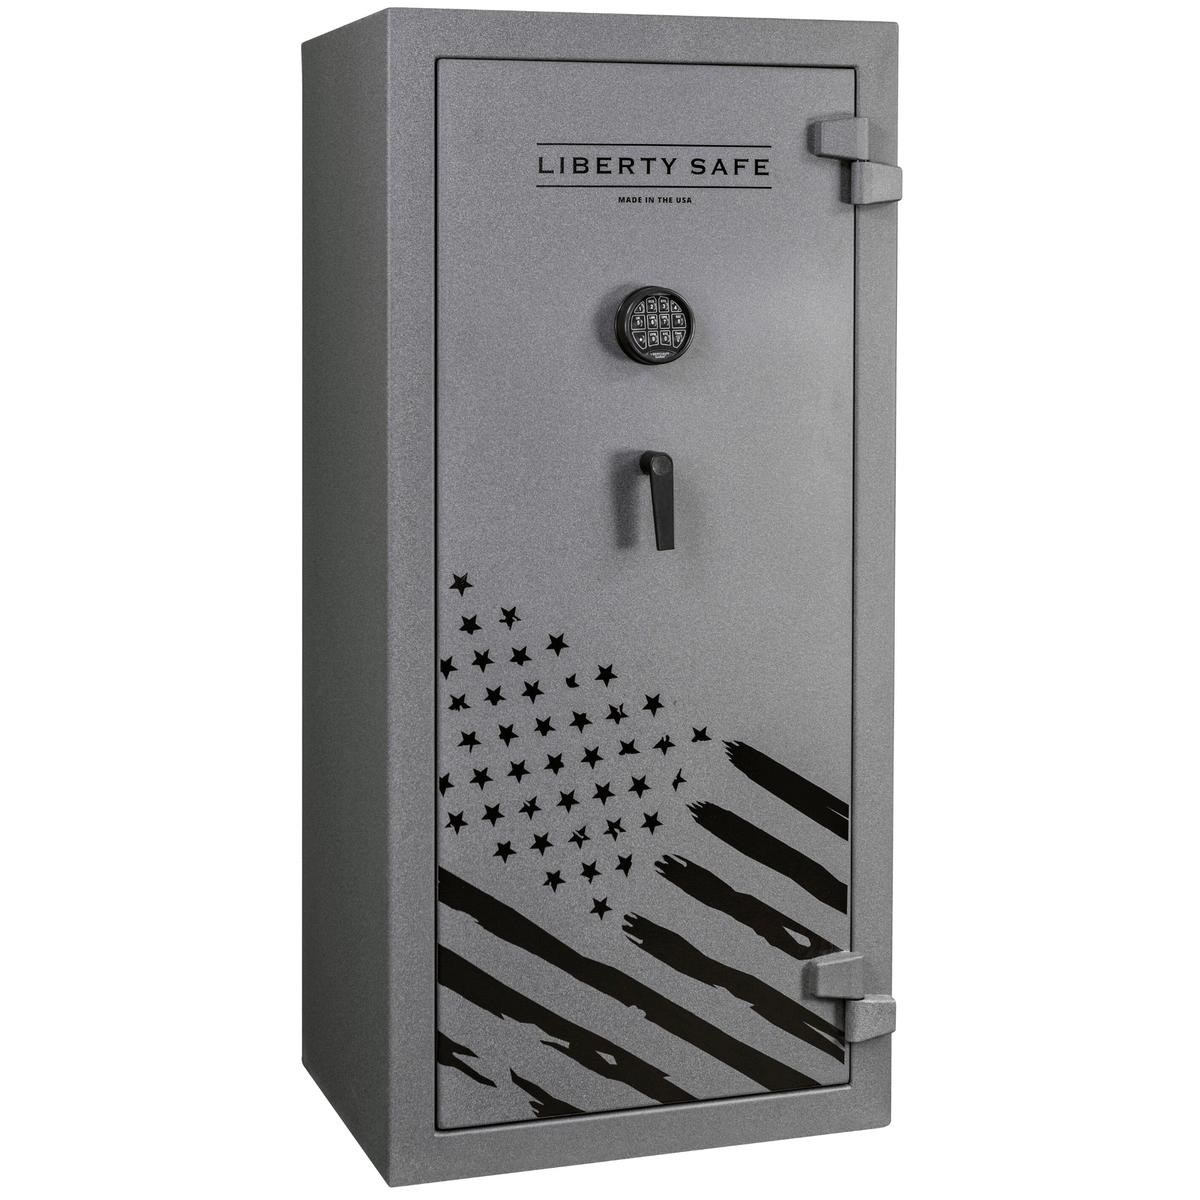 "Centurion 24 - Level 1 Security - 30 Minute Fire Protection - Granite - Electronic Lock - Dimensions: 59.5""(H) x 28.25""(W) x 22""(D)"